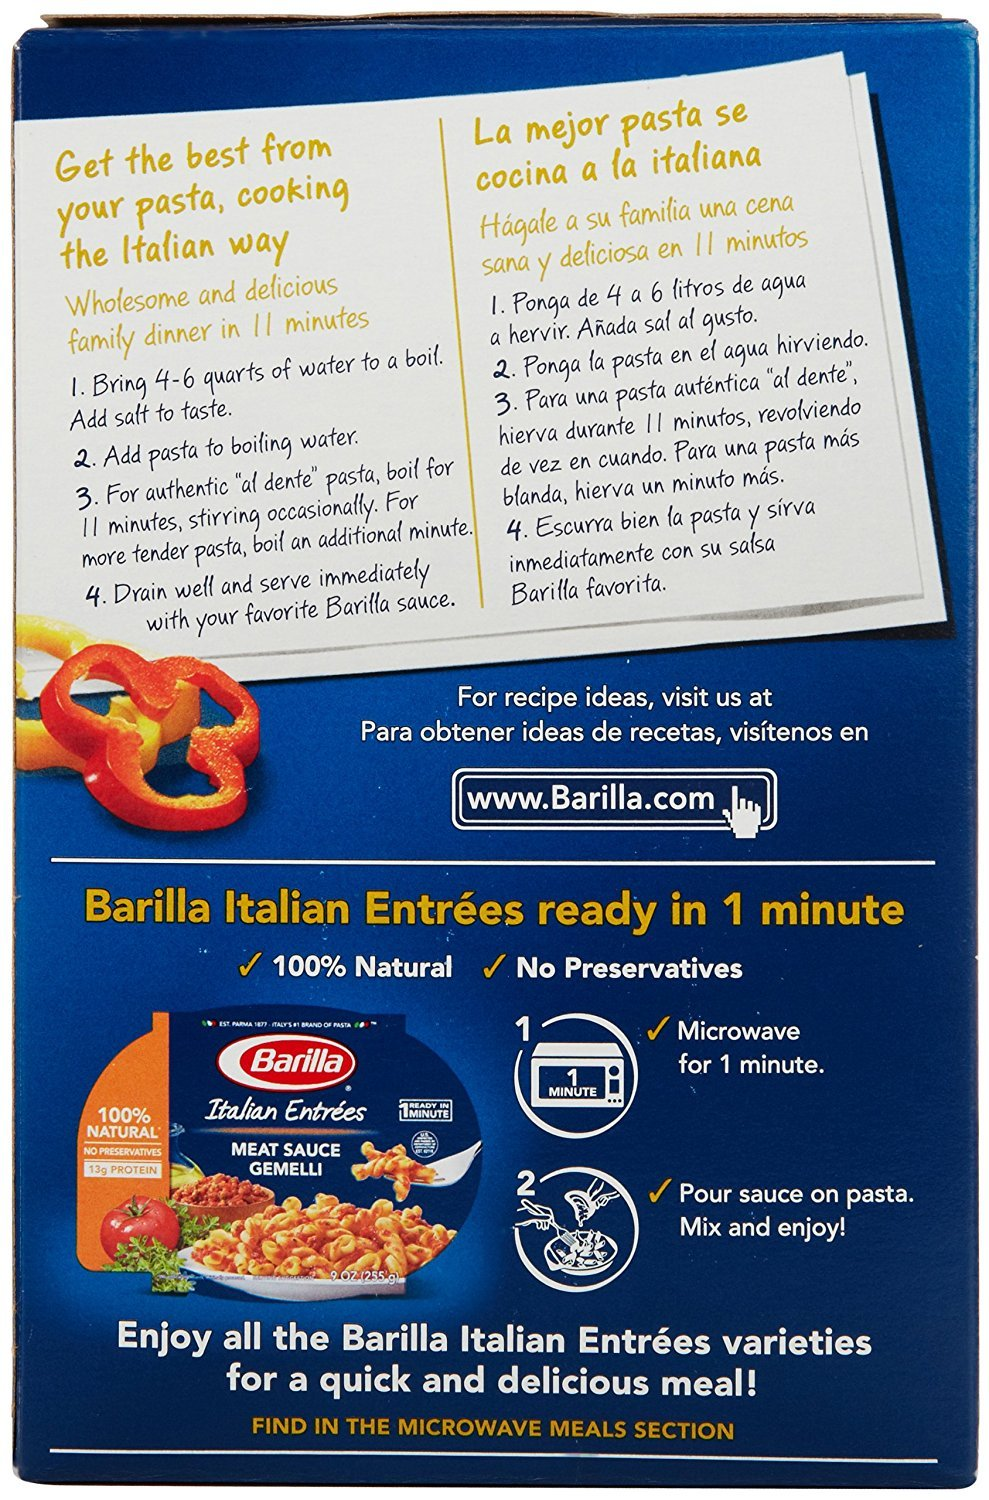 Amazon.com : Barilla Pasta Penne, 1.0 LB (Pack of 2) : Grocery & Gourmet Food